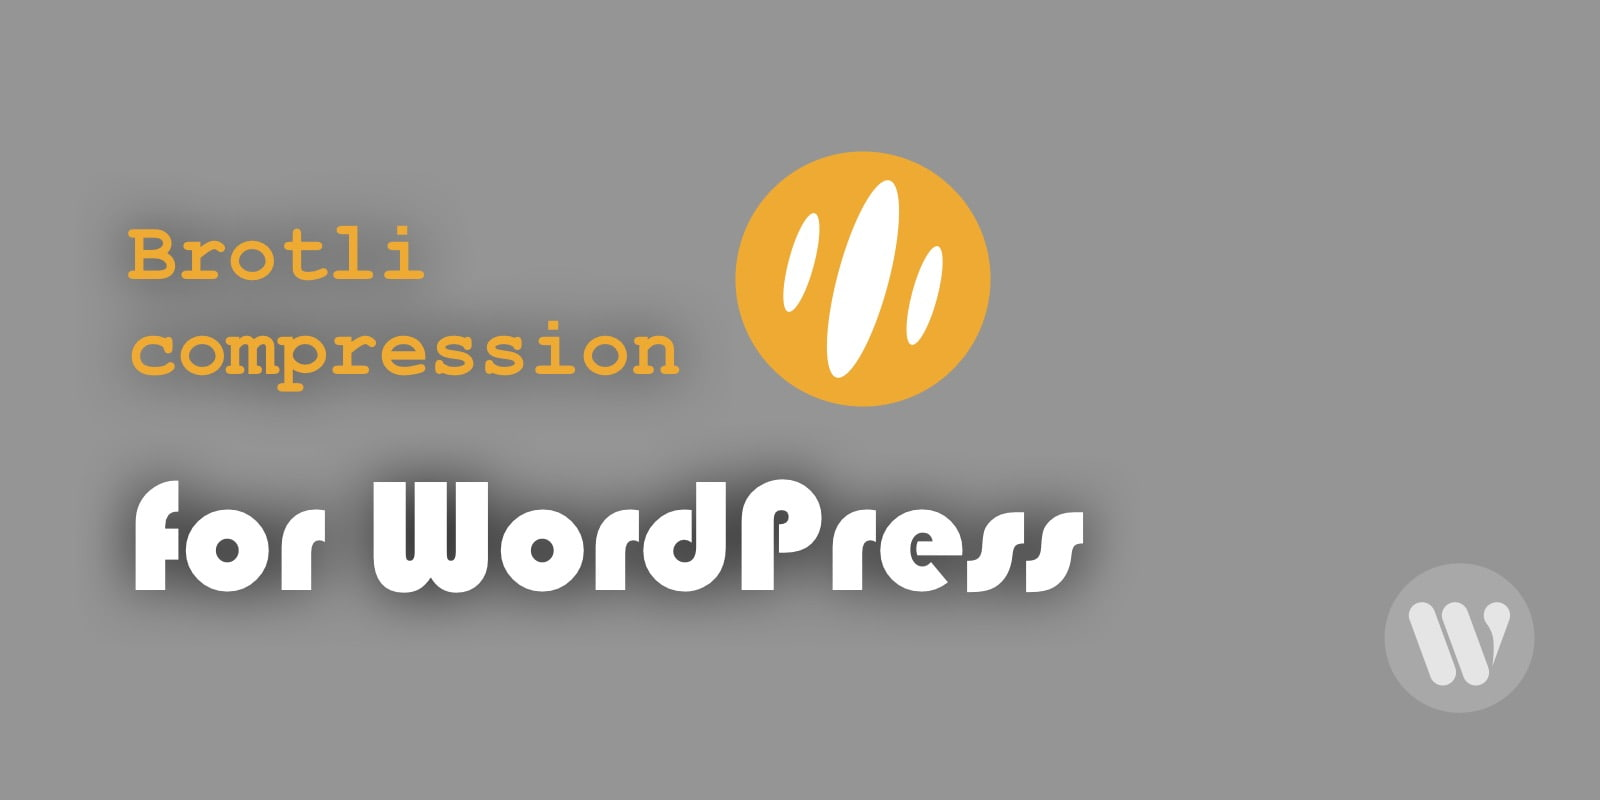 brotli-compression-for-wordpress-1.jpg